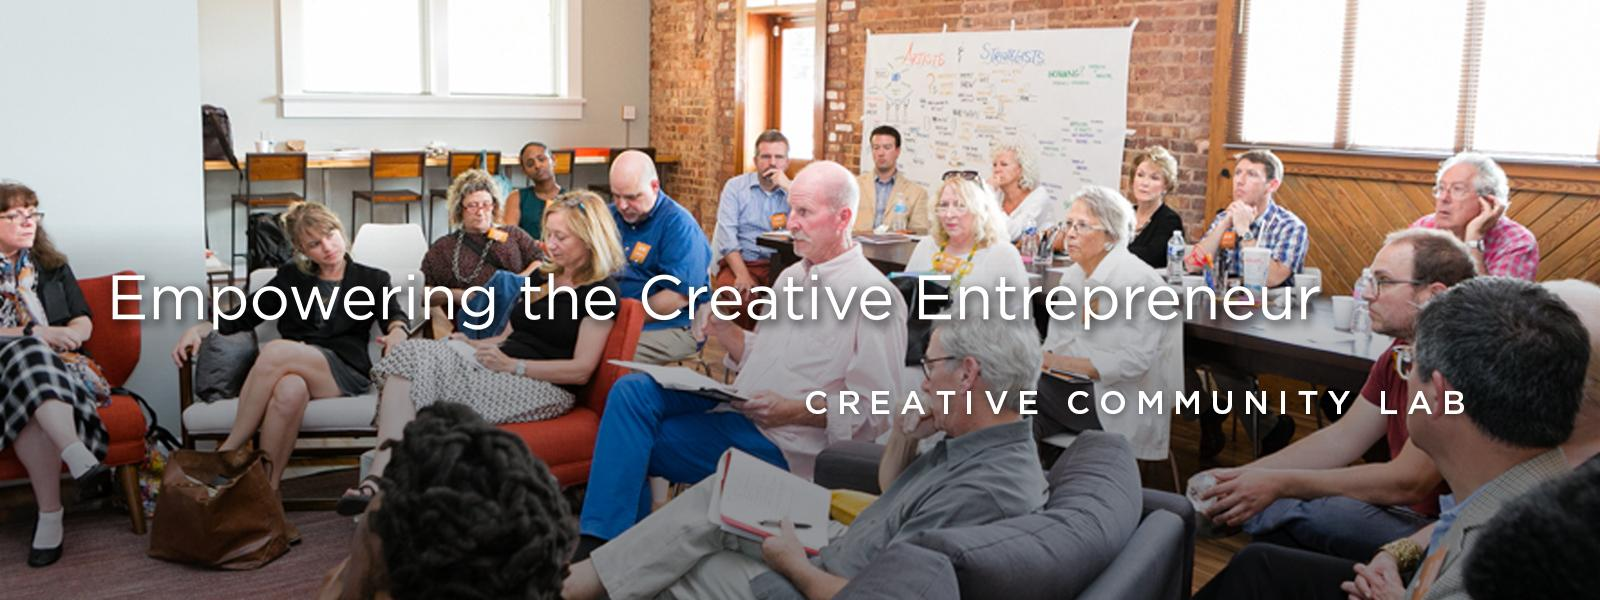 Empowering the Creative Entrepreneur - Creative Community Lab